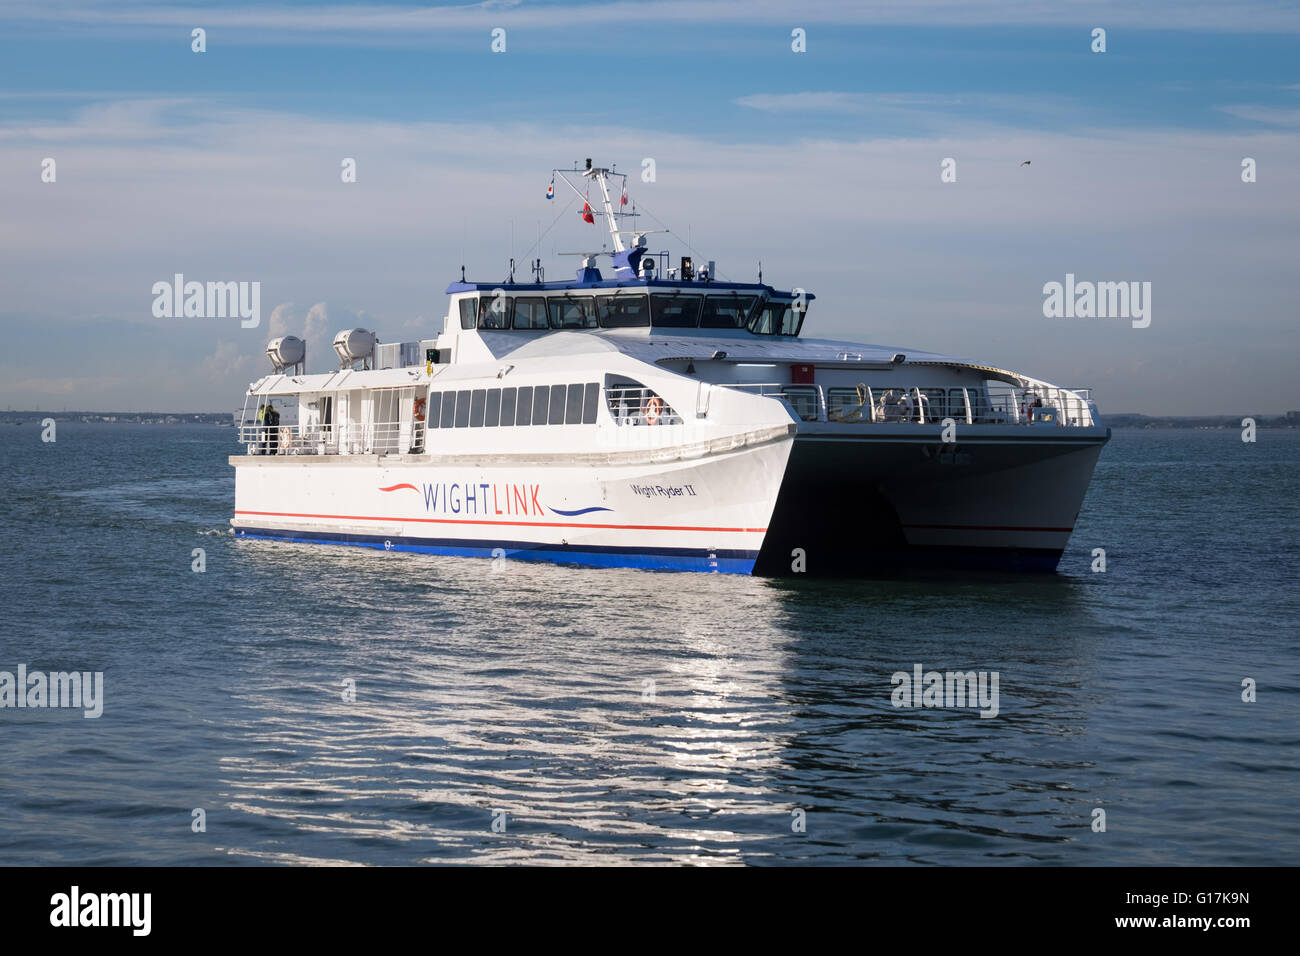 Wightlink passenger ferry, Wight Ryder 2 approaching Ryde Pier, Isle of Wight - Stock Image